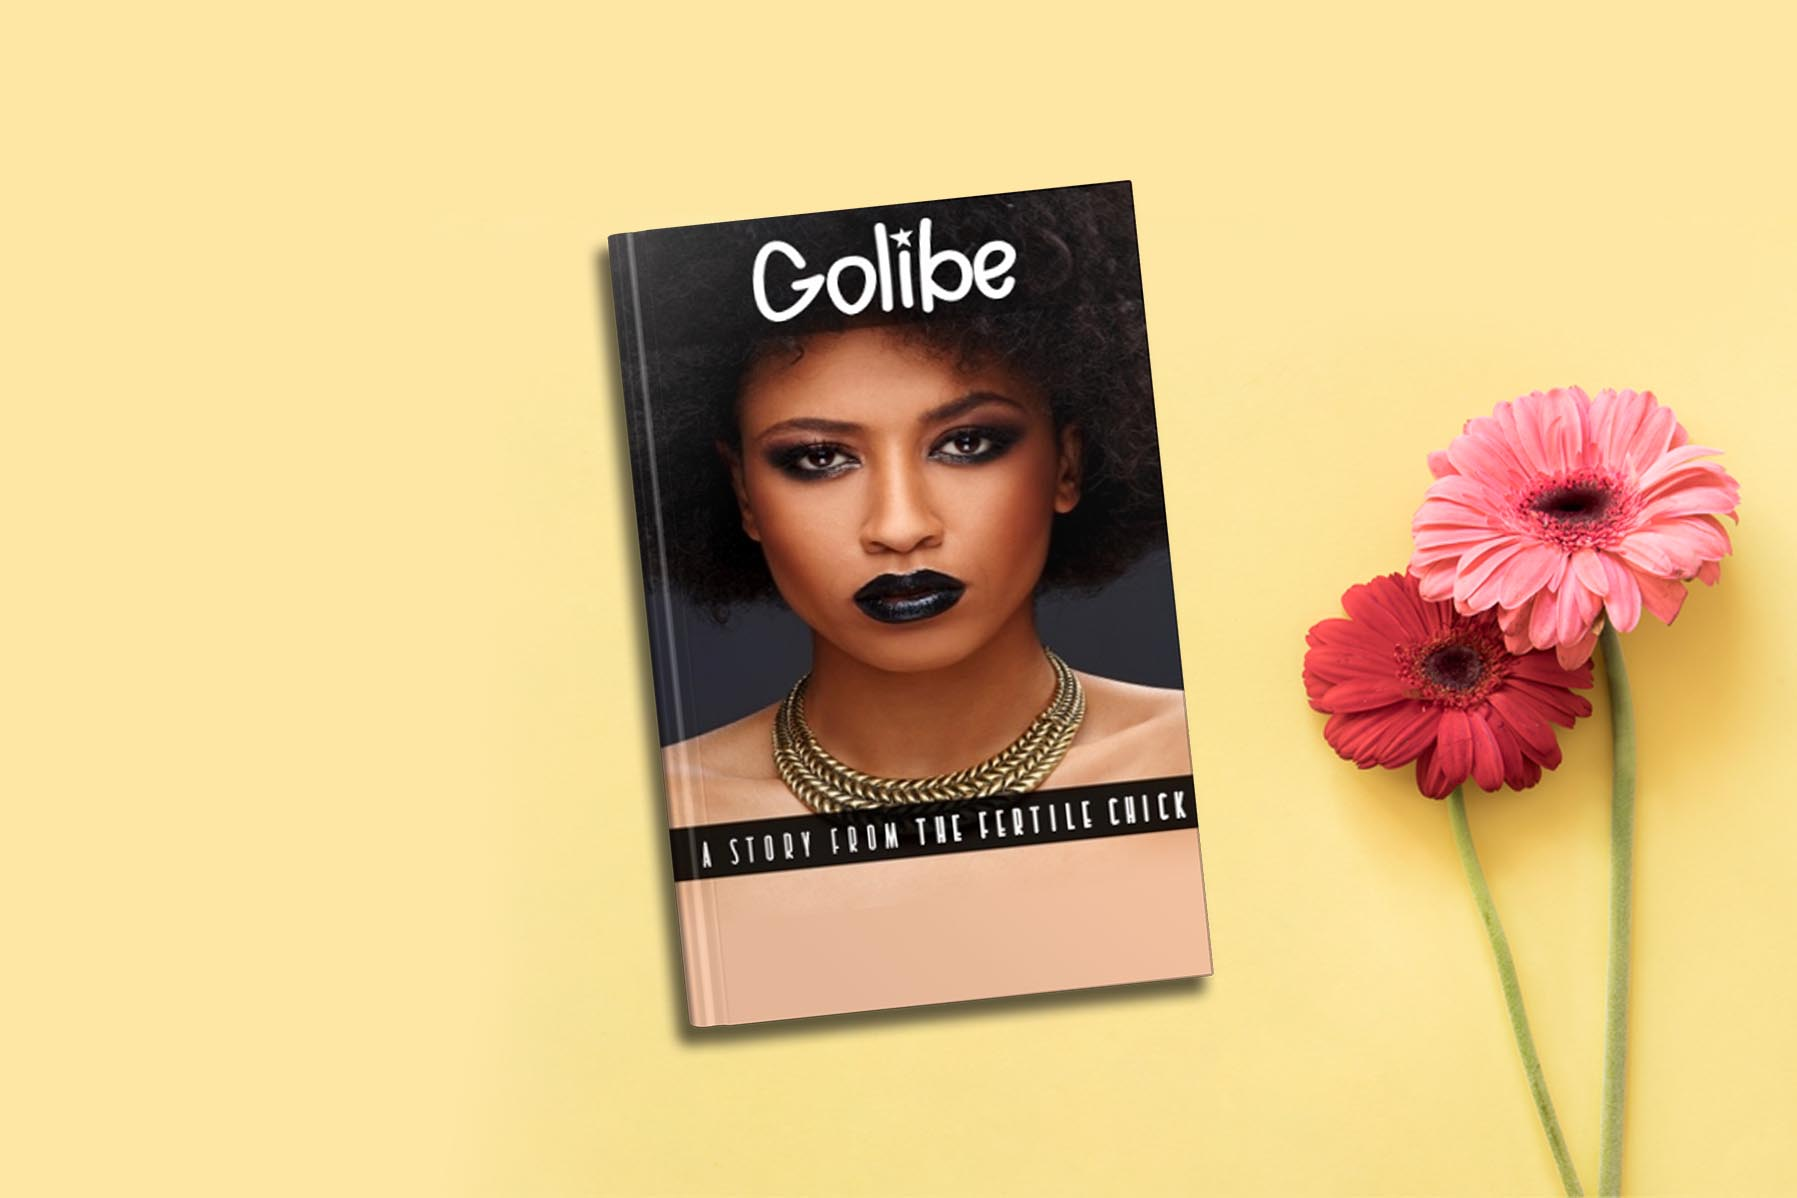 golibe review